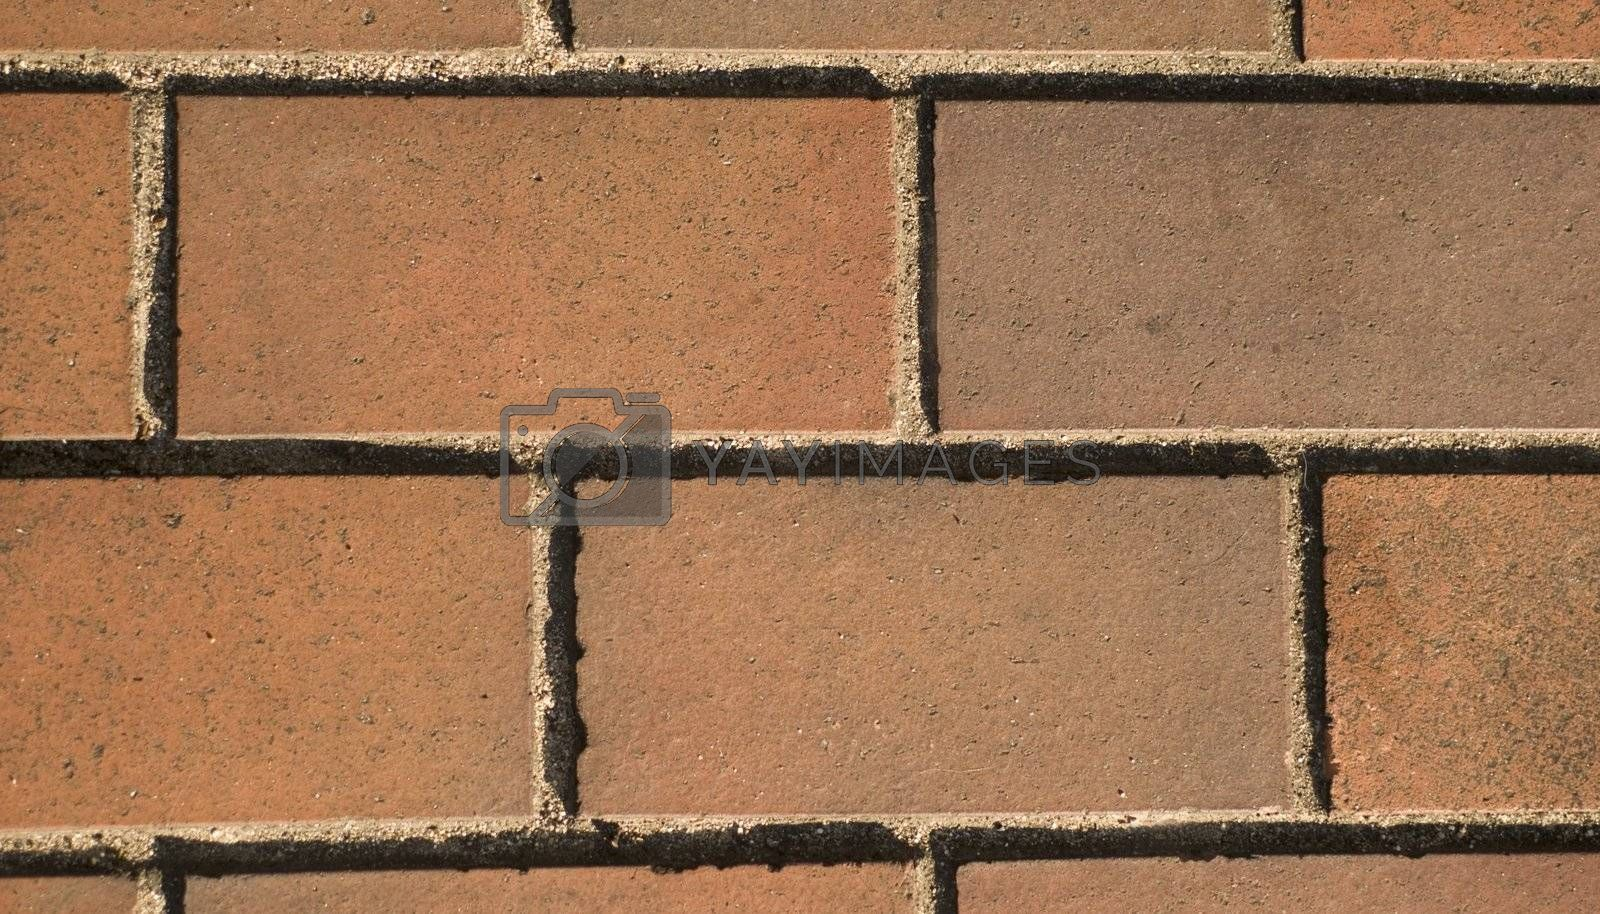 Optical illusion, simple brick pattern, clay rectangular tiles left to right. street in Nagoya, Japan.